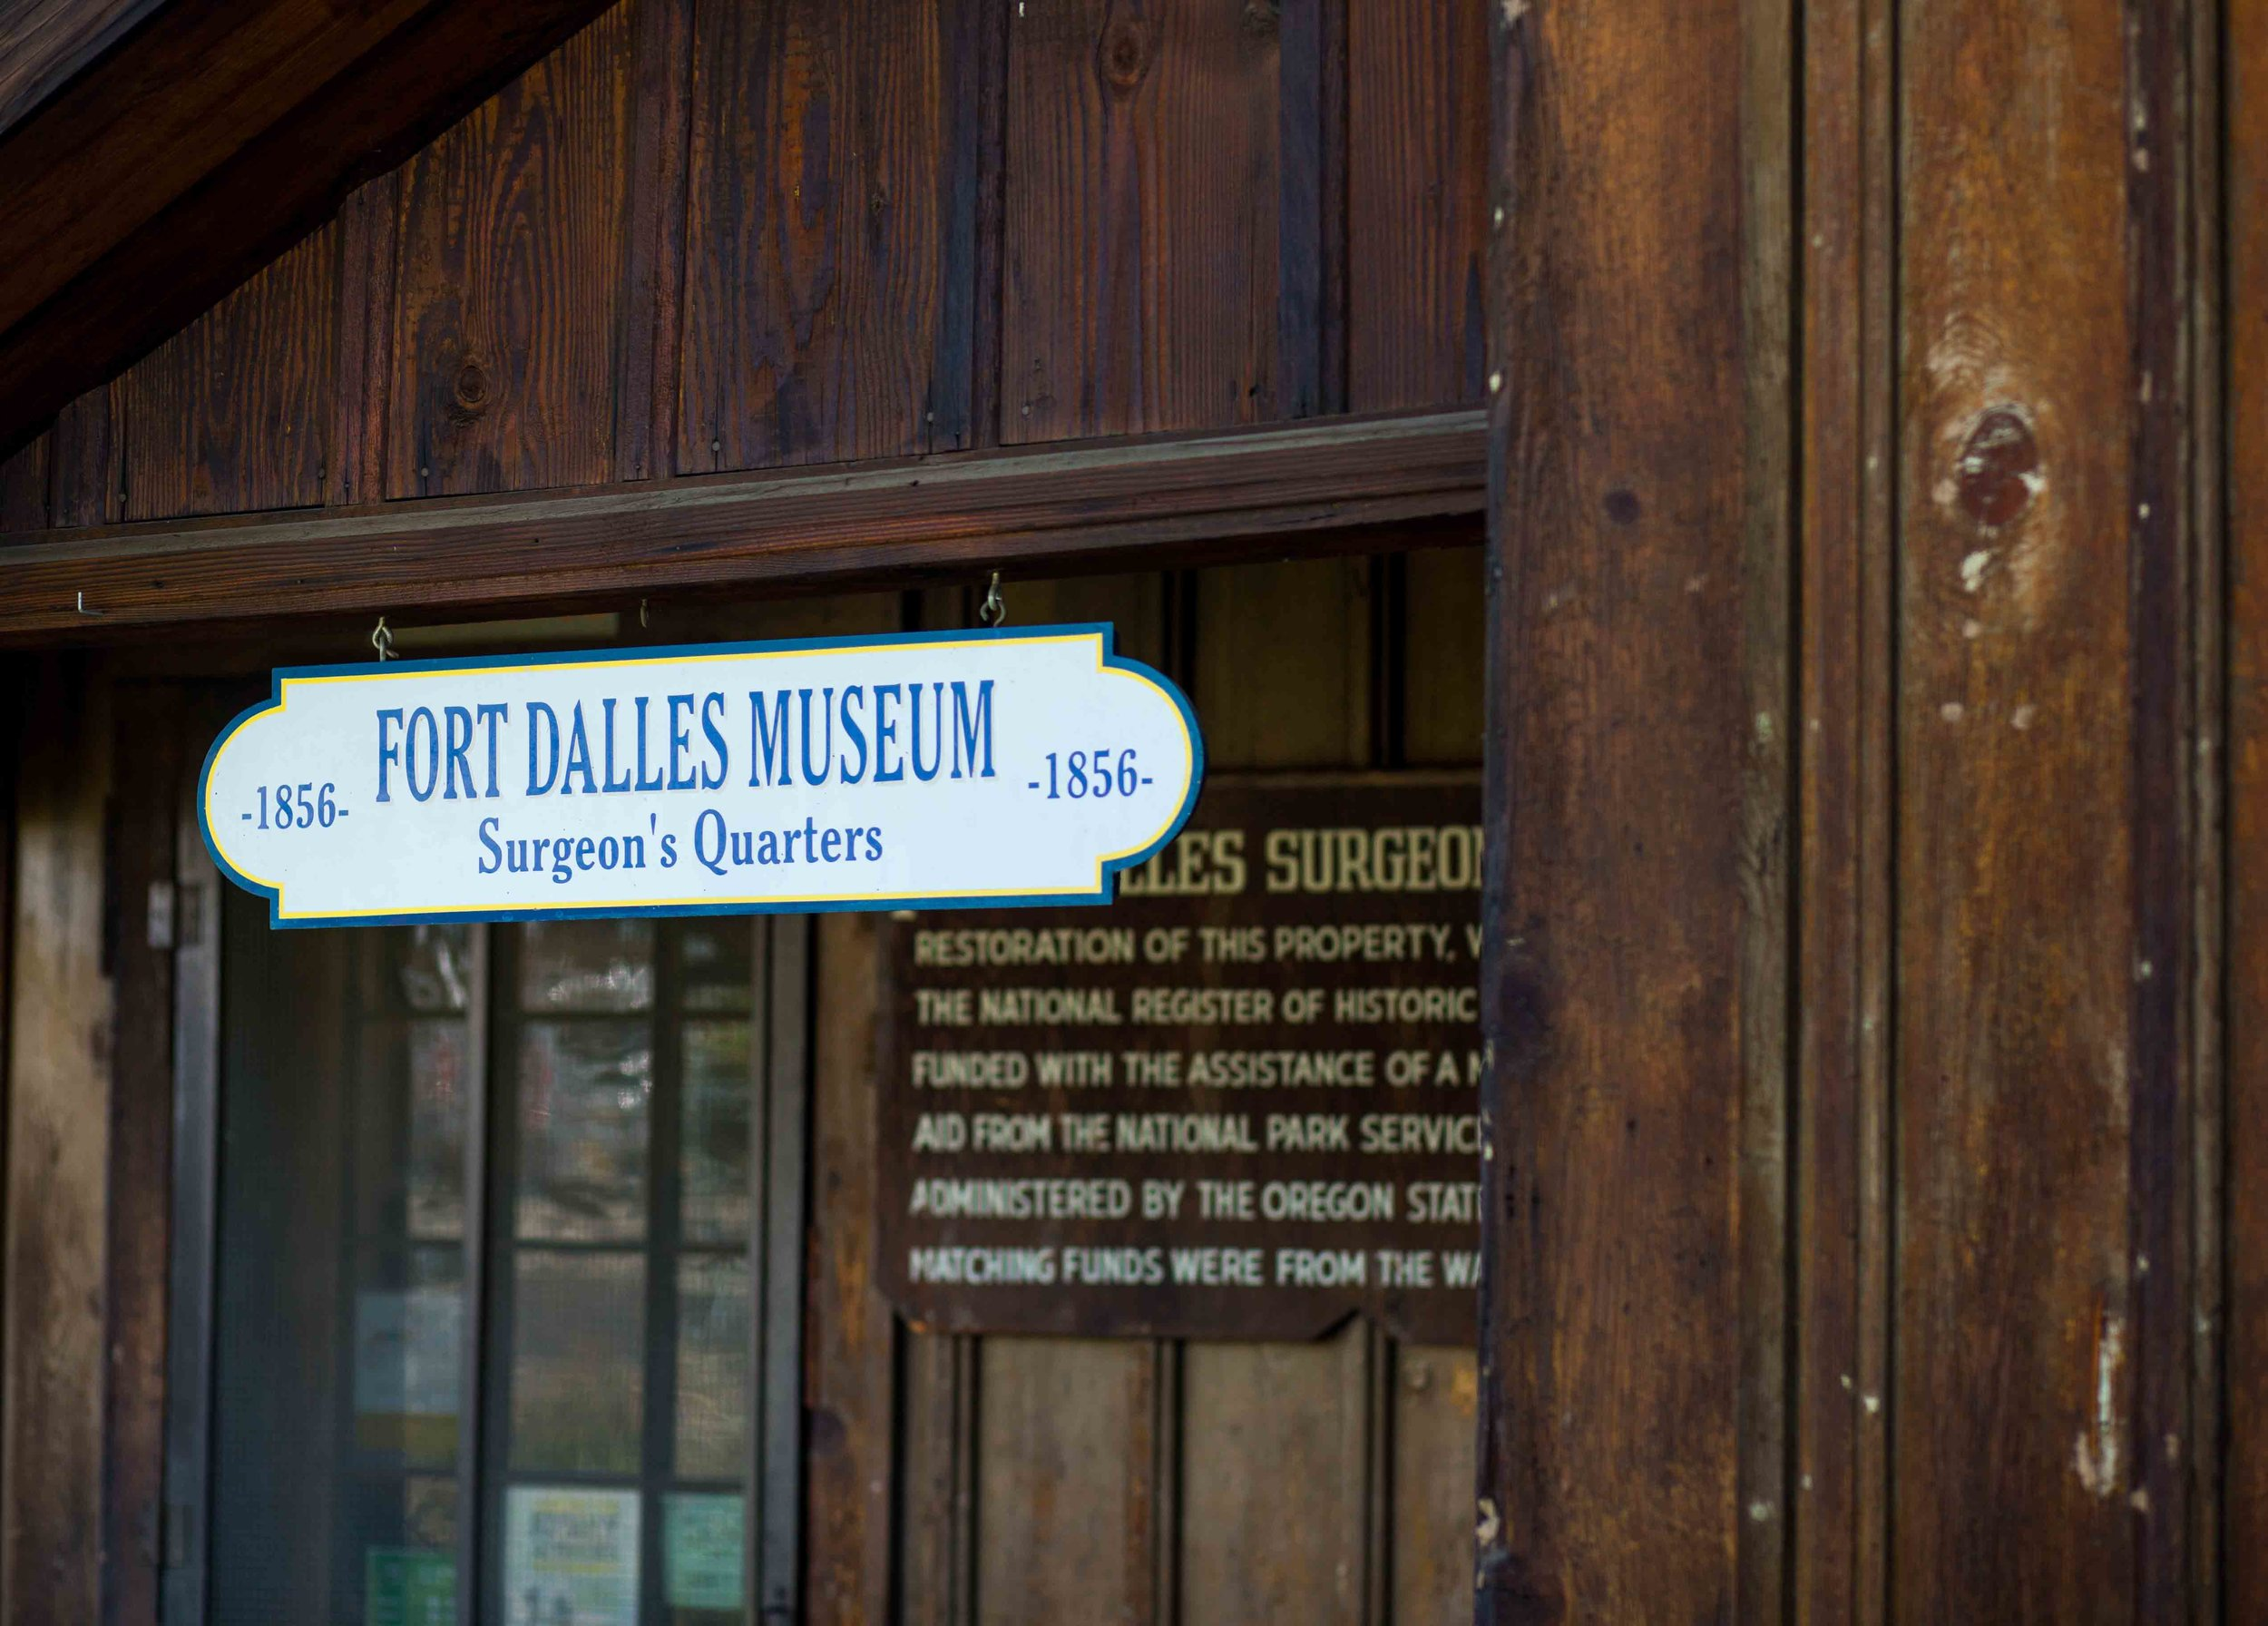 Fort Dalles Fort The Dalles Oregon Historic History Photos Immense Imagery Website 1900 Pioneers Settlers Museum-52.jpg